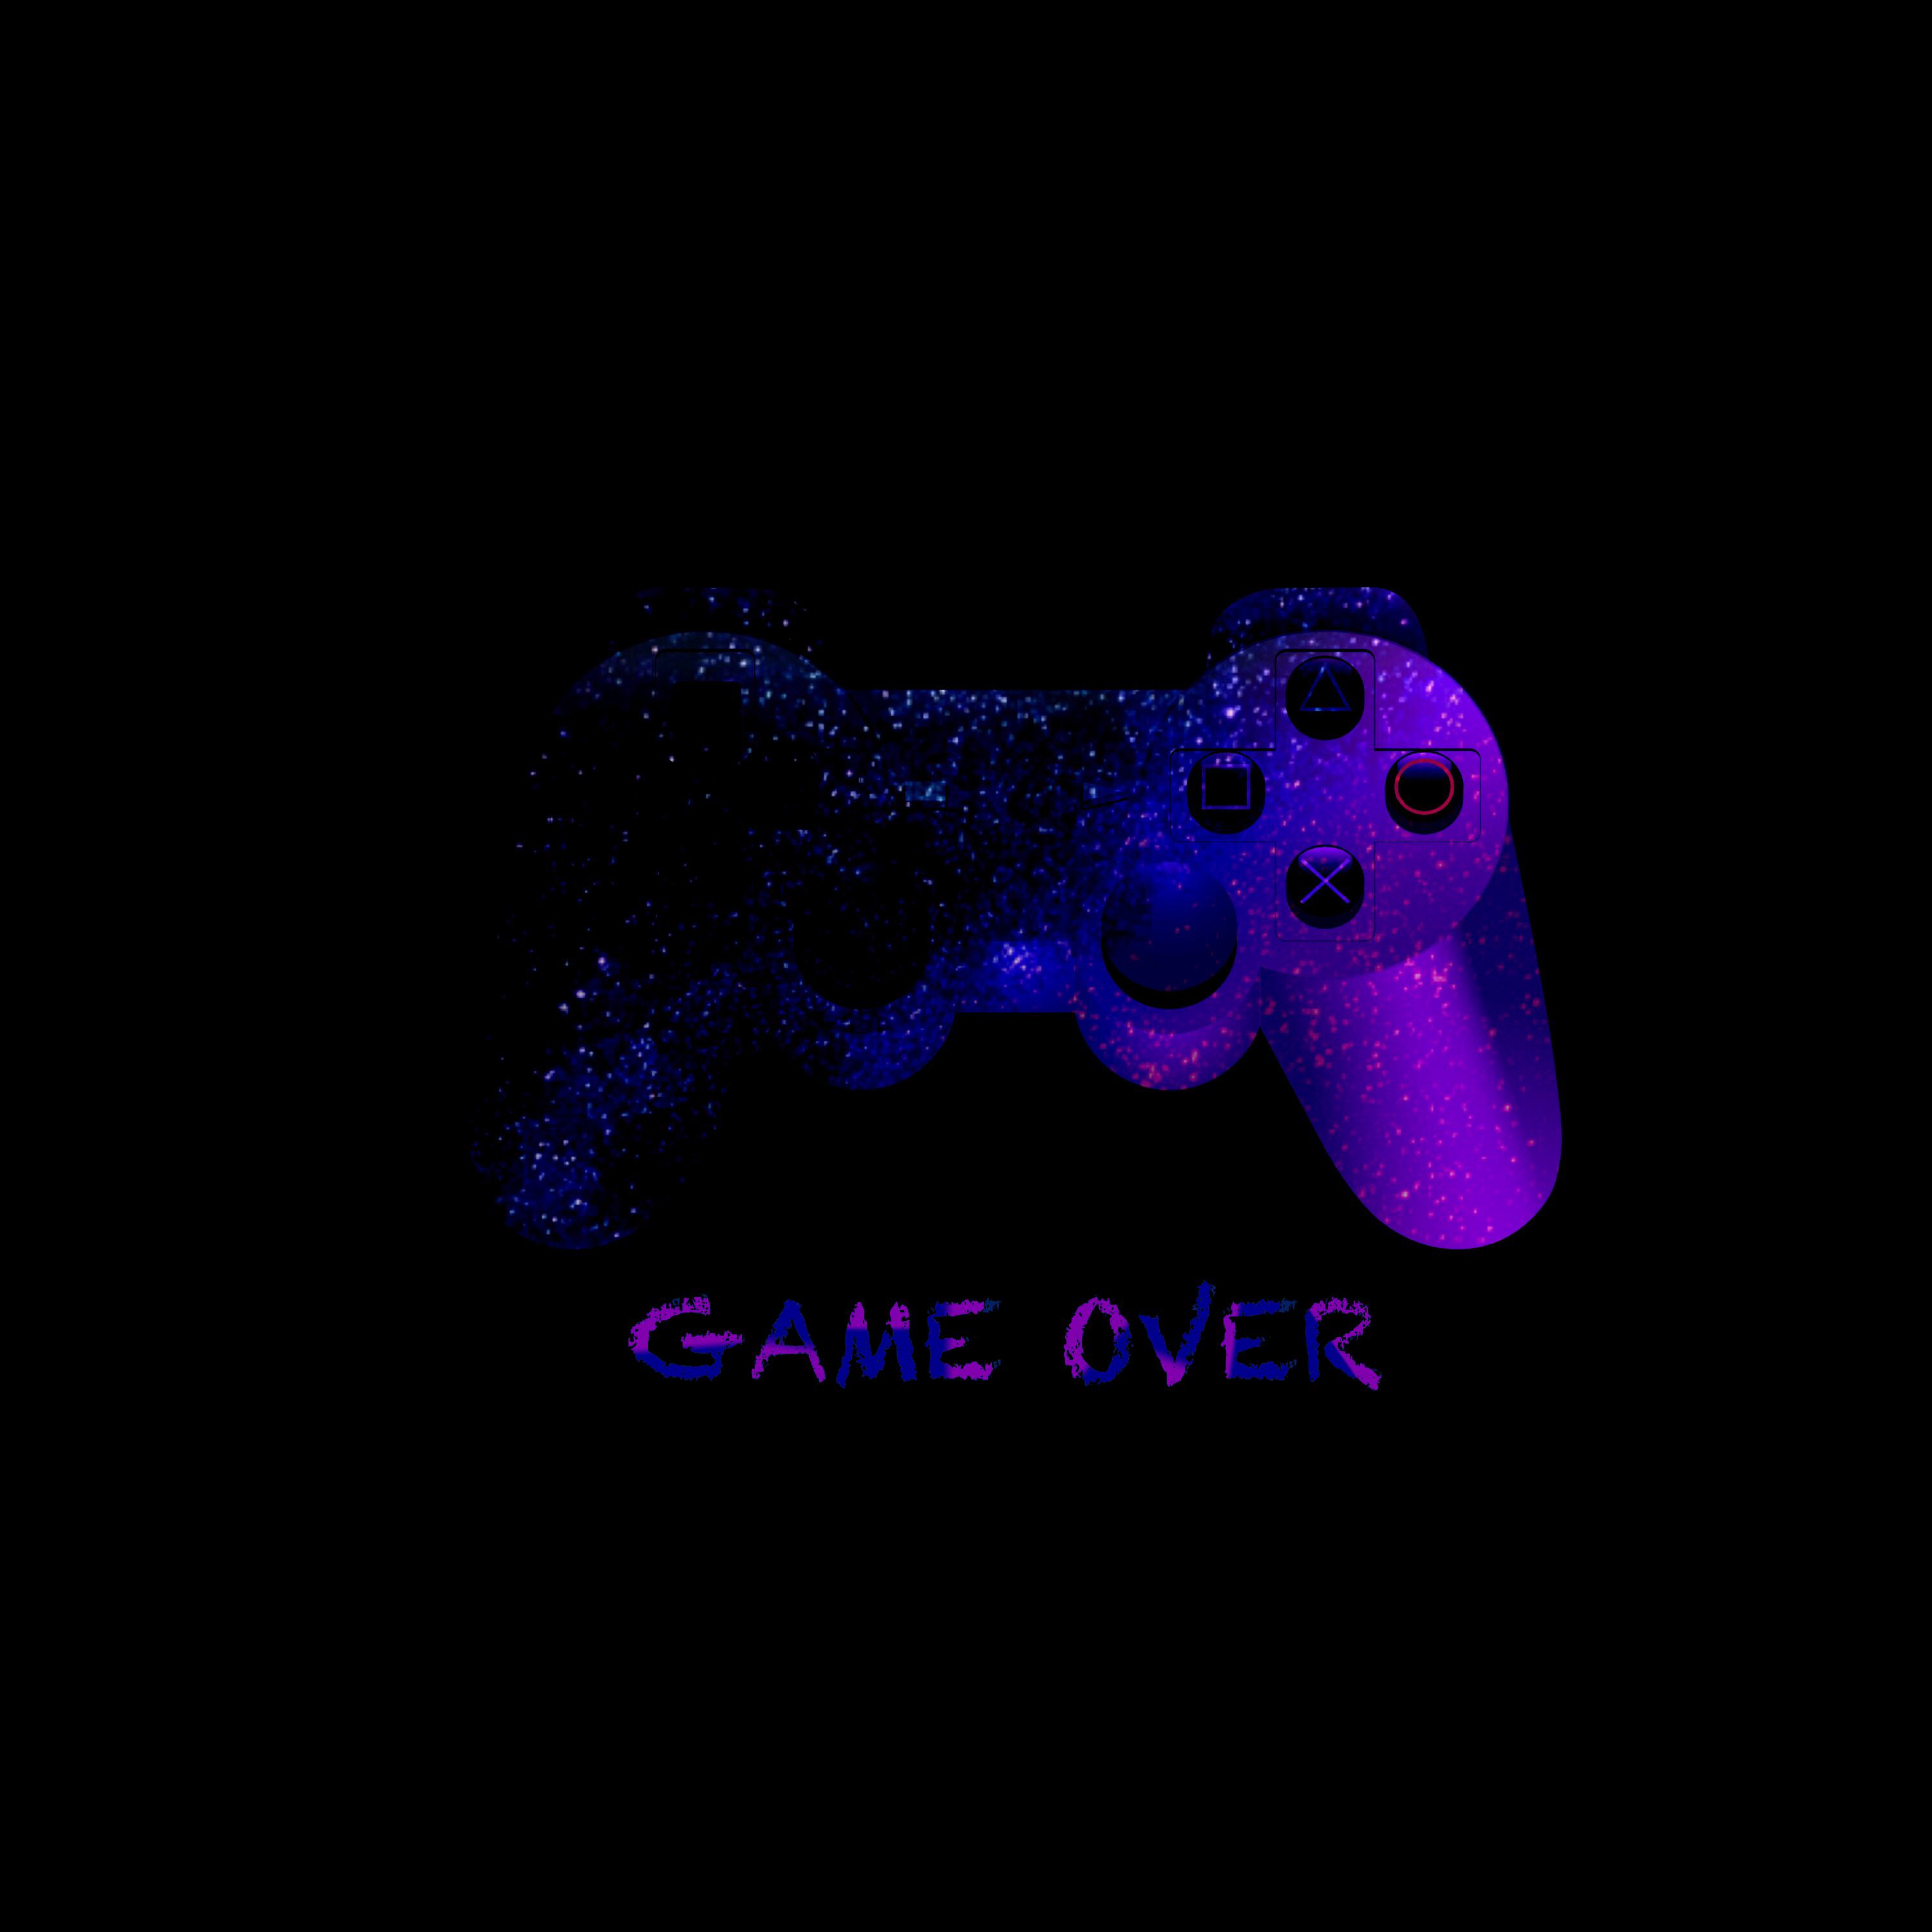 138236 download wallpaper Words, Game Over, Joystick, Controller, Gamepad, Neon screensavers and pictures for free